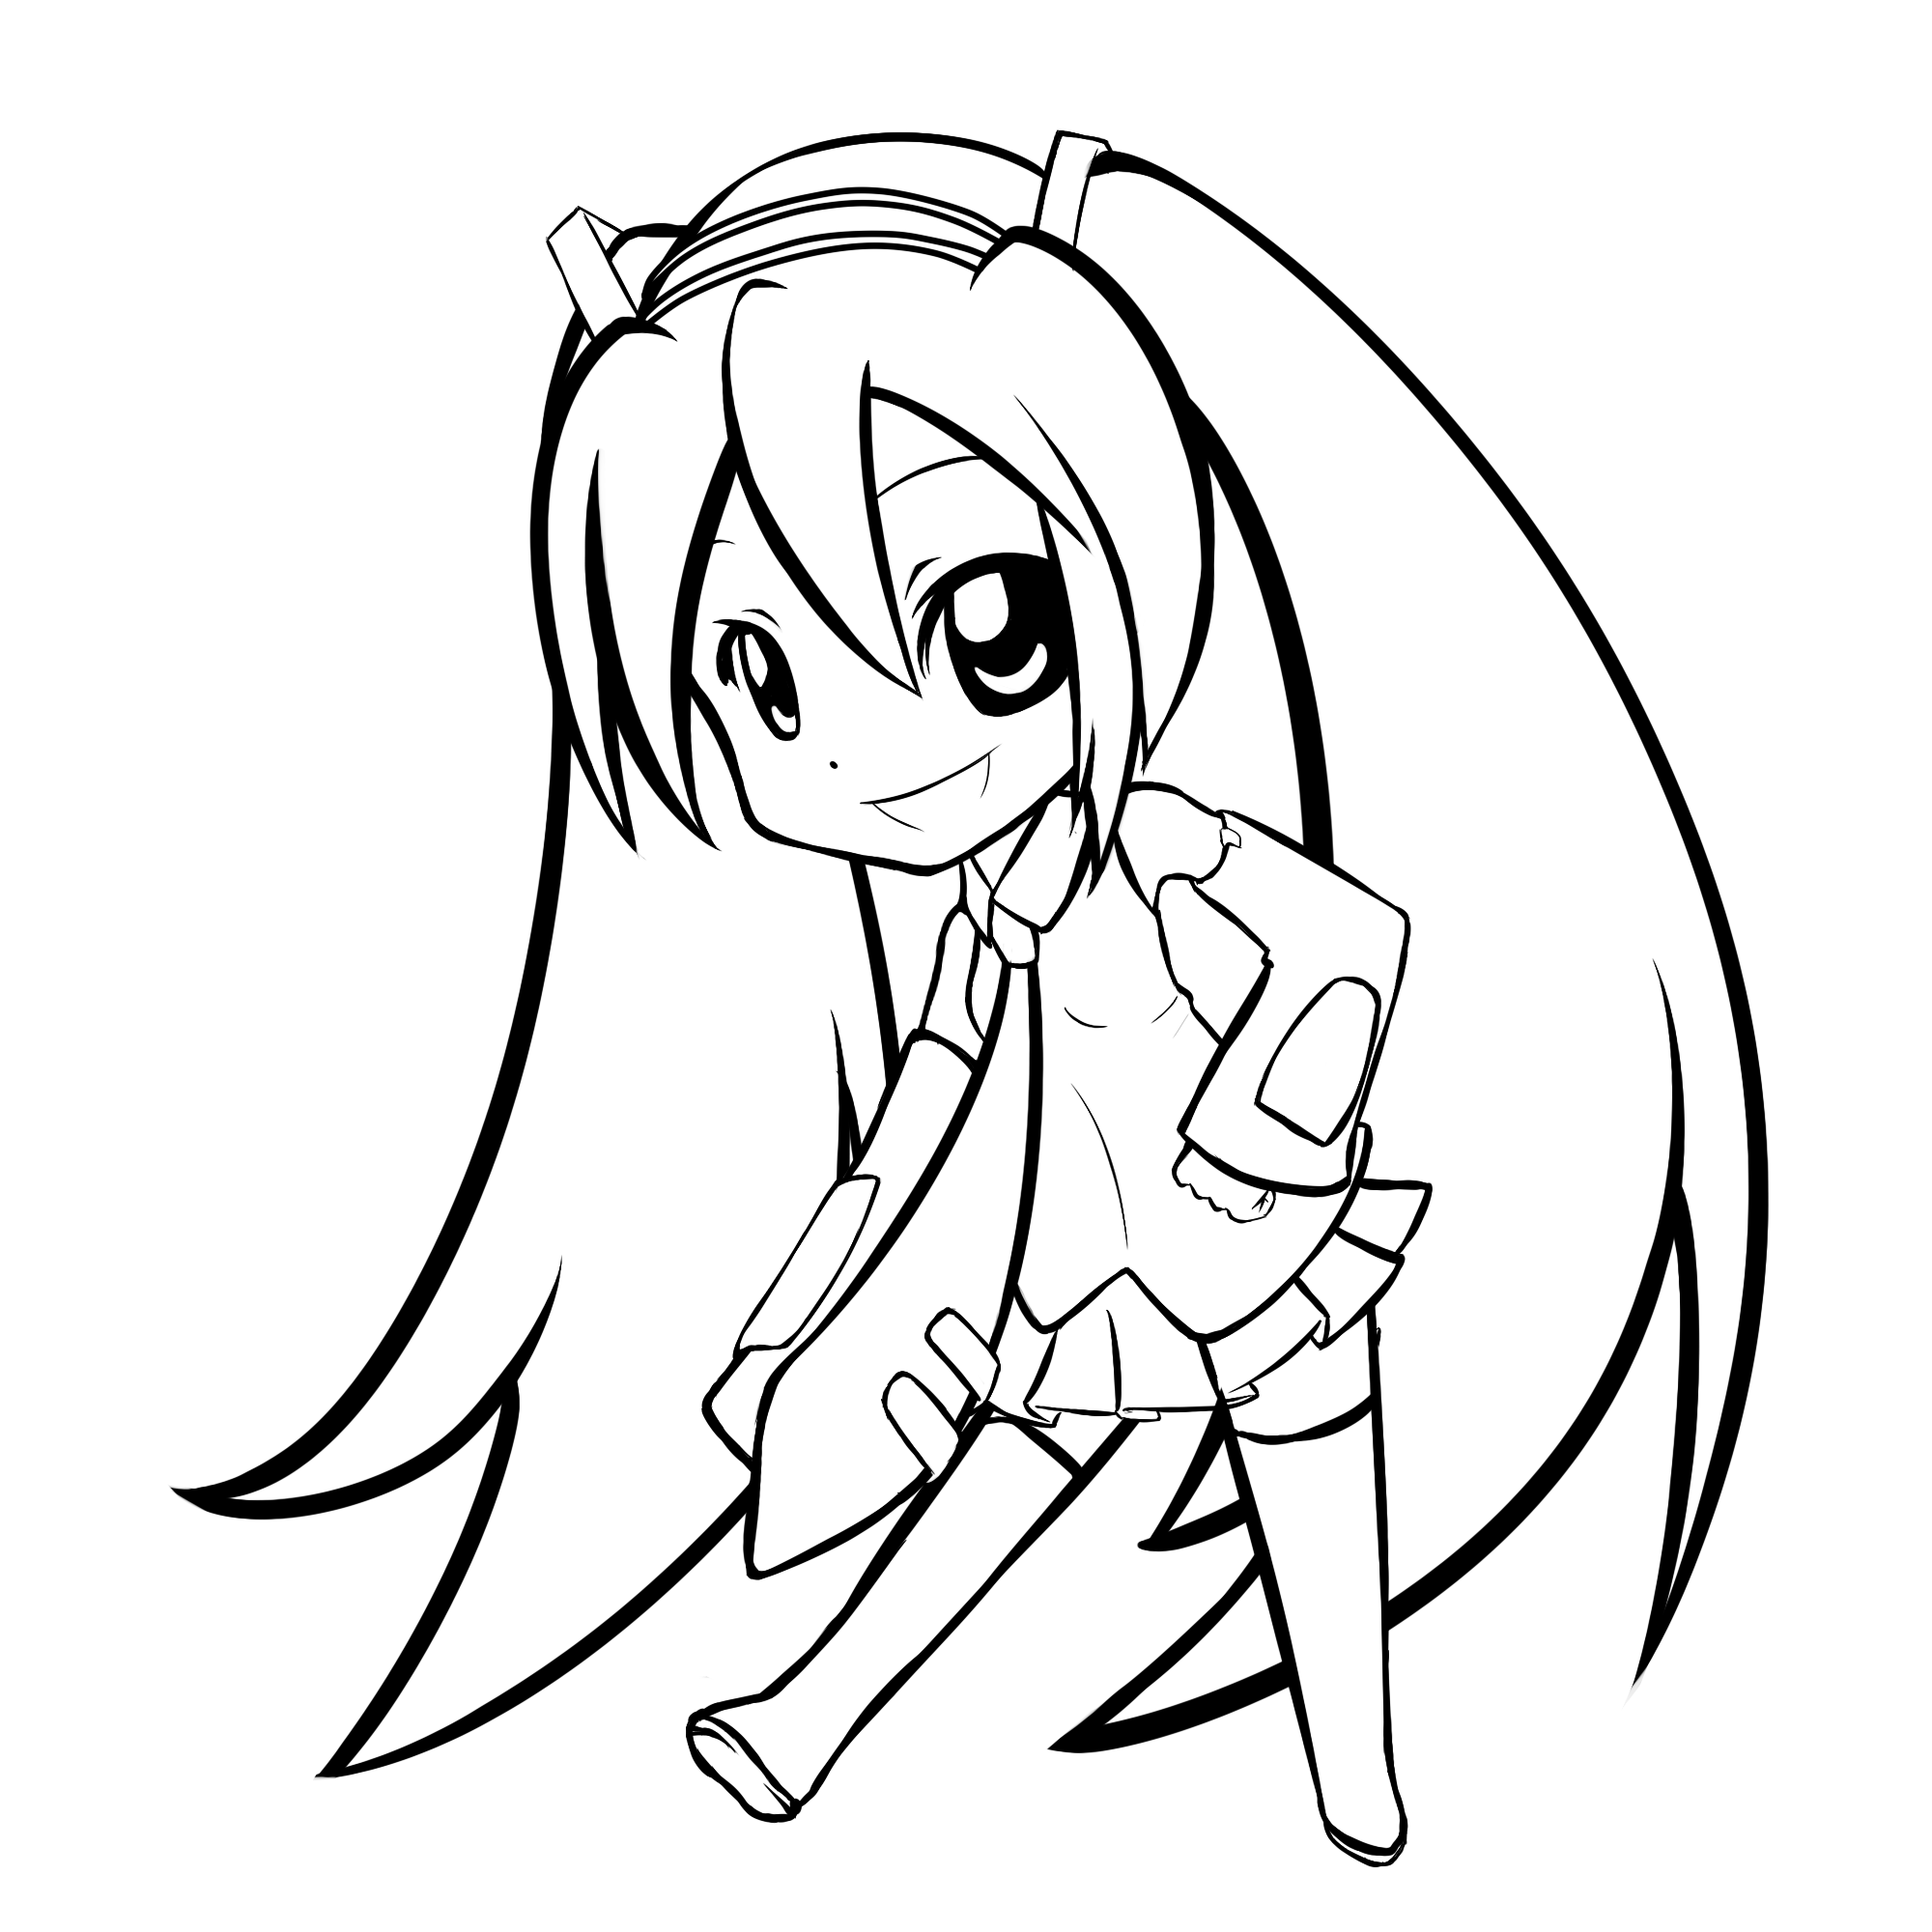 chibimaru coloring pages - photo#37